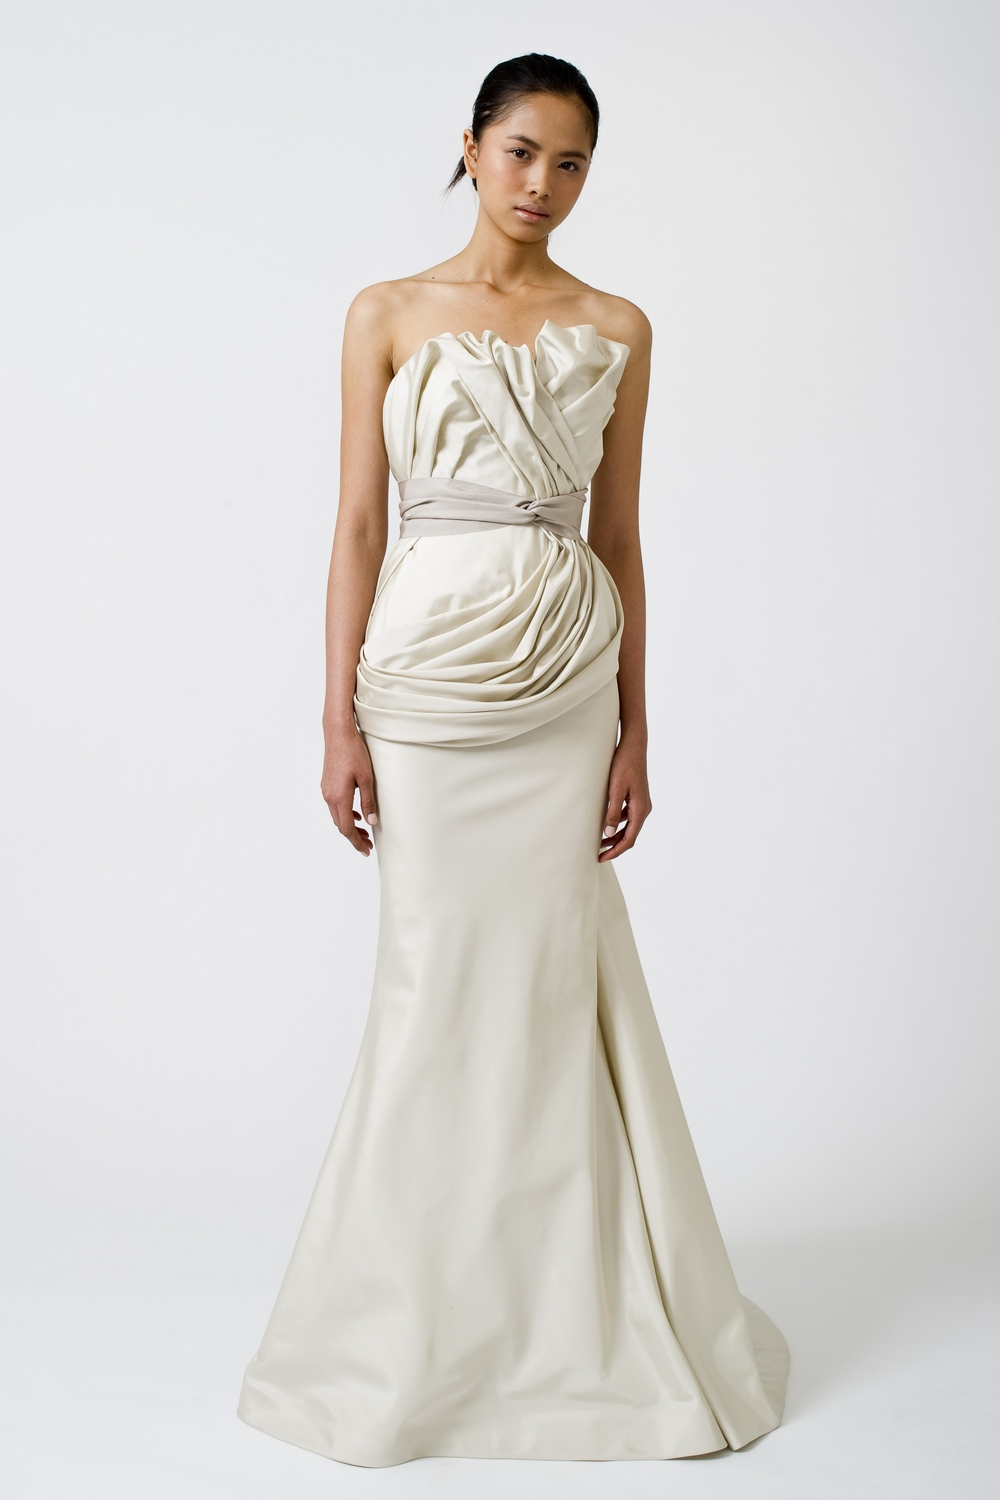 6-spring-2011-vera-wang-wedding-dress-mermaid-ivory.original